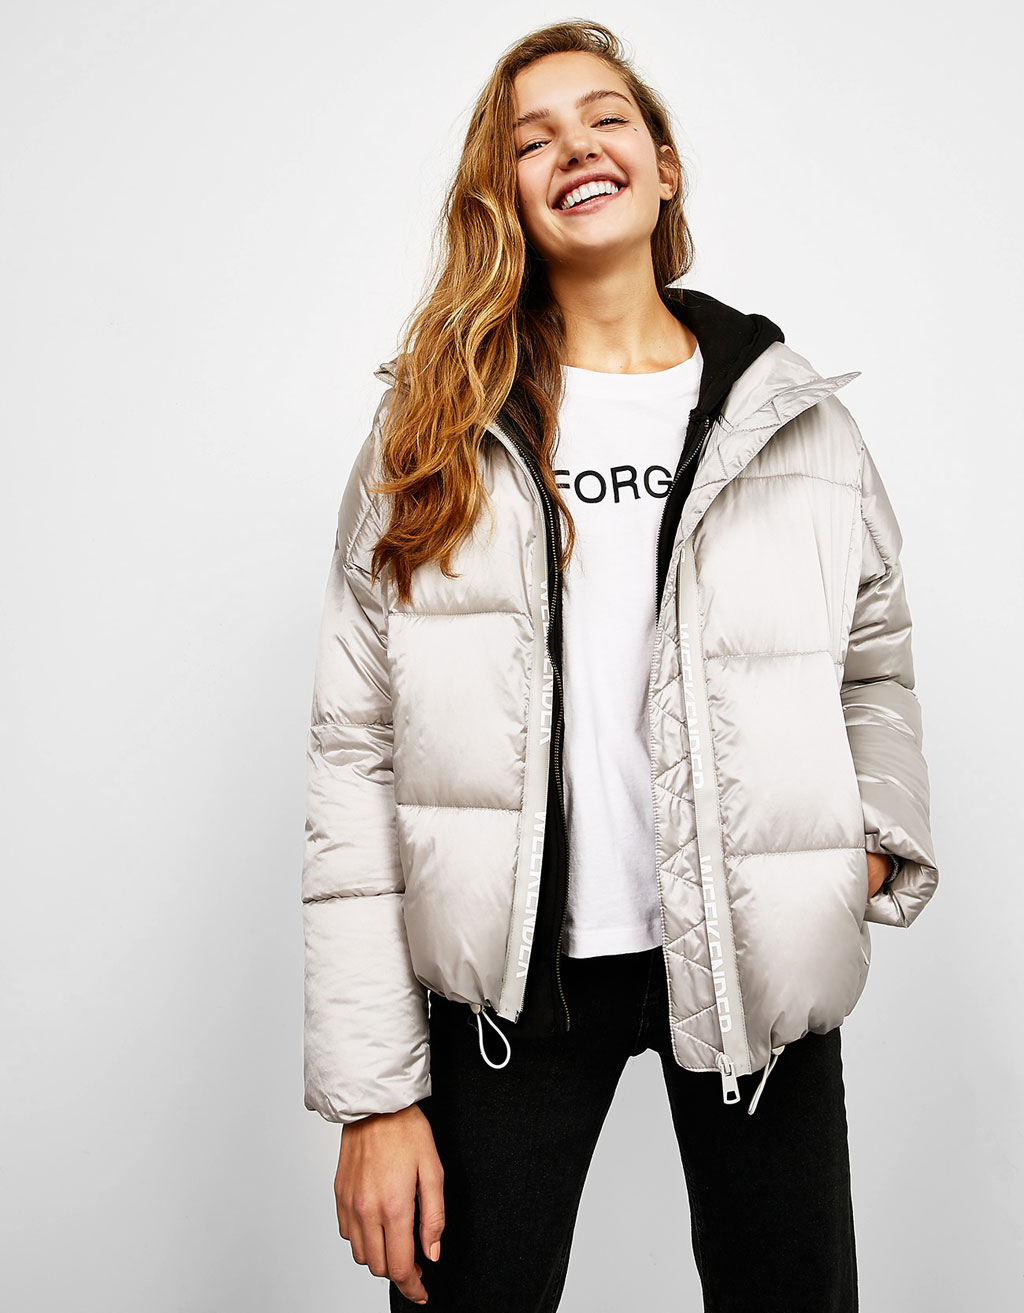 Puffy silver jacket with slogan zip